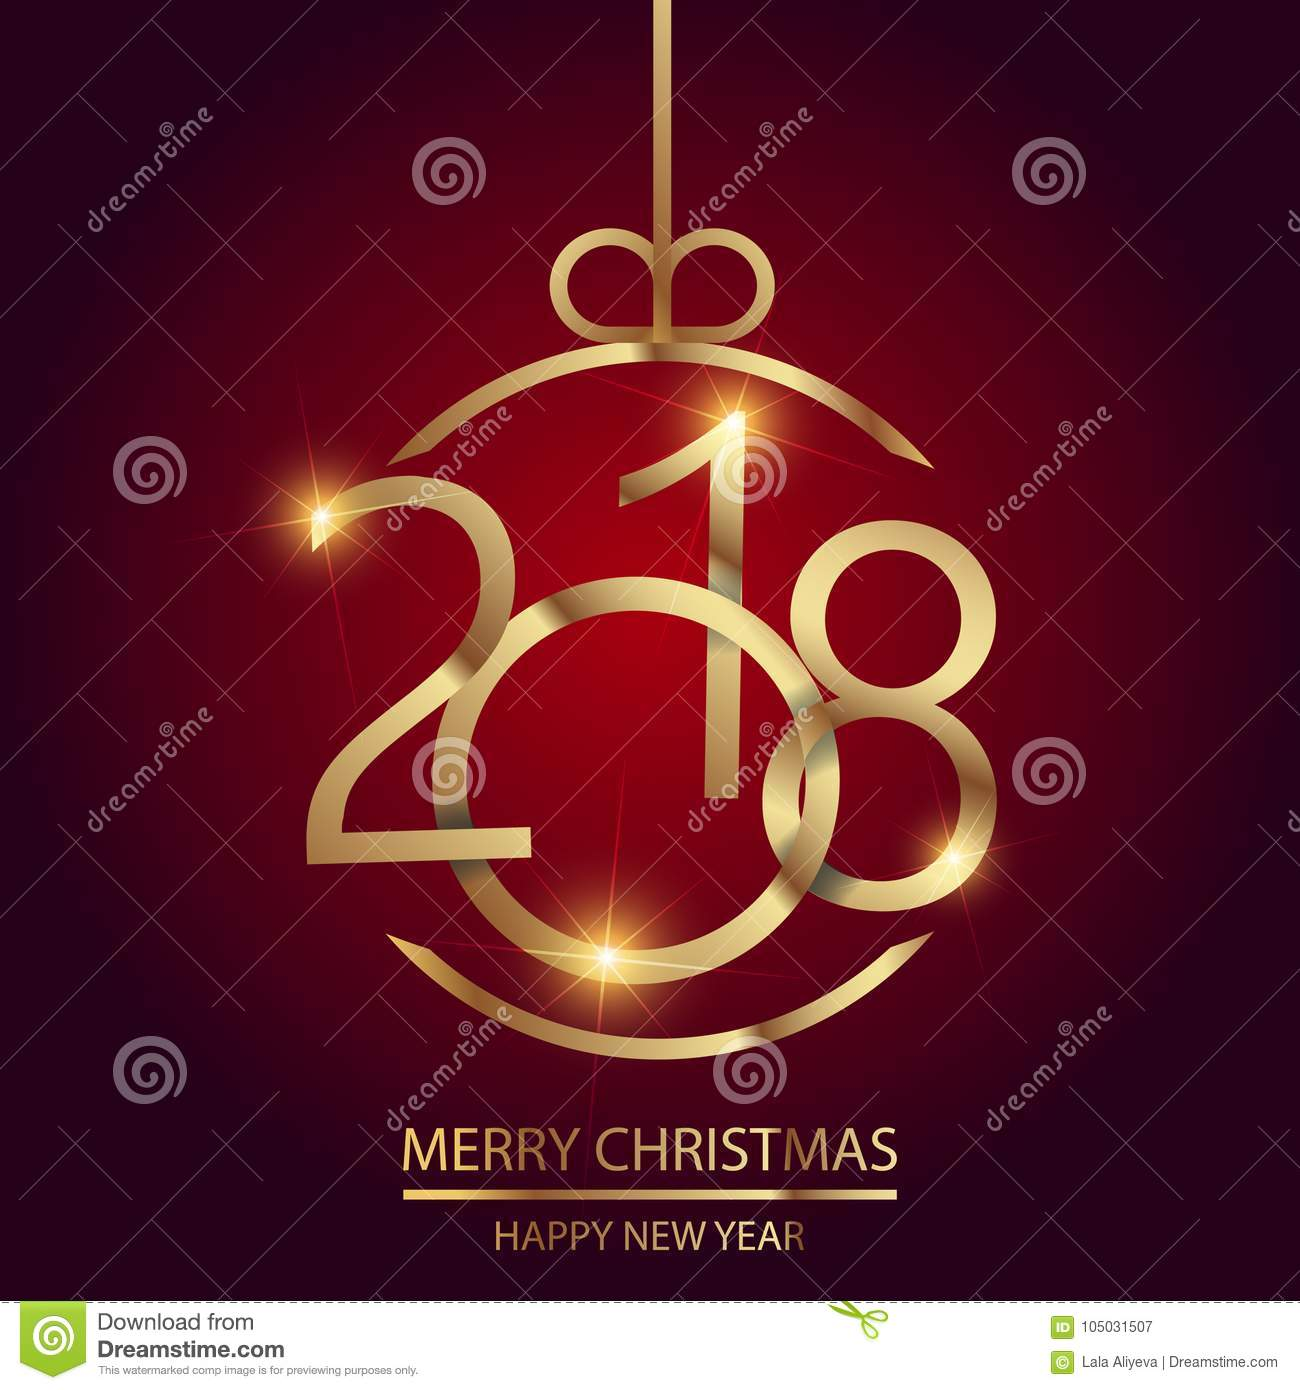 Happy New Year Greeting Card With Shining Gold Text And Christmas